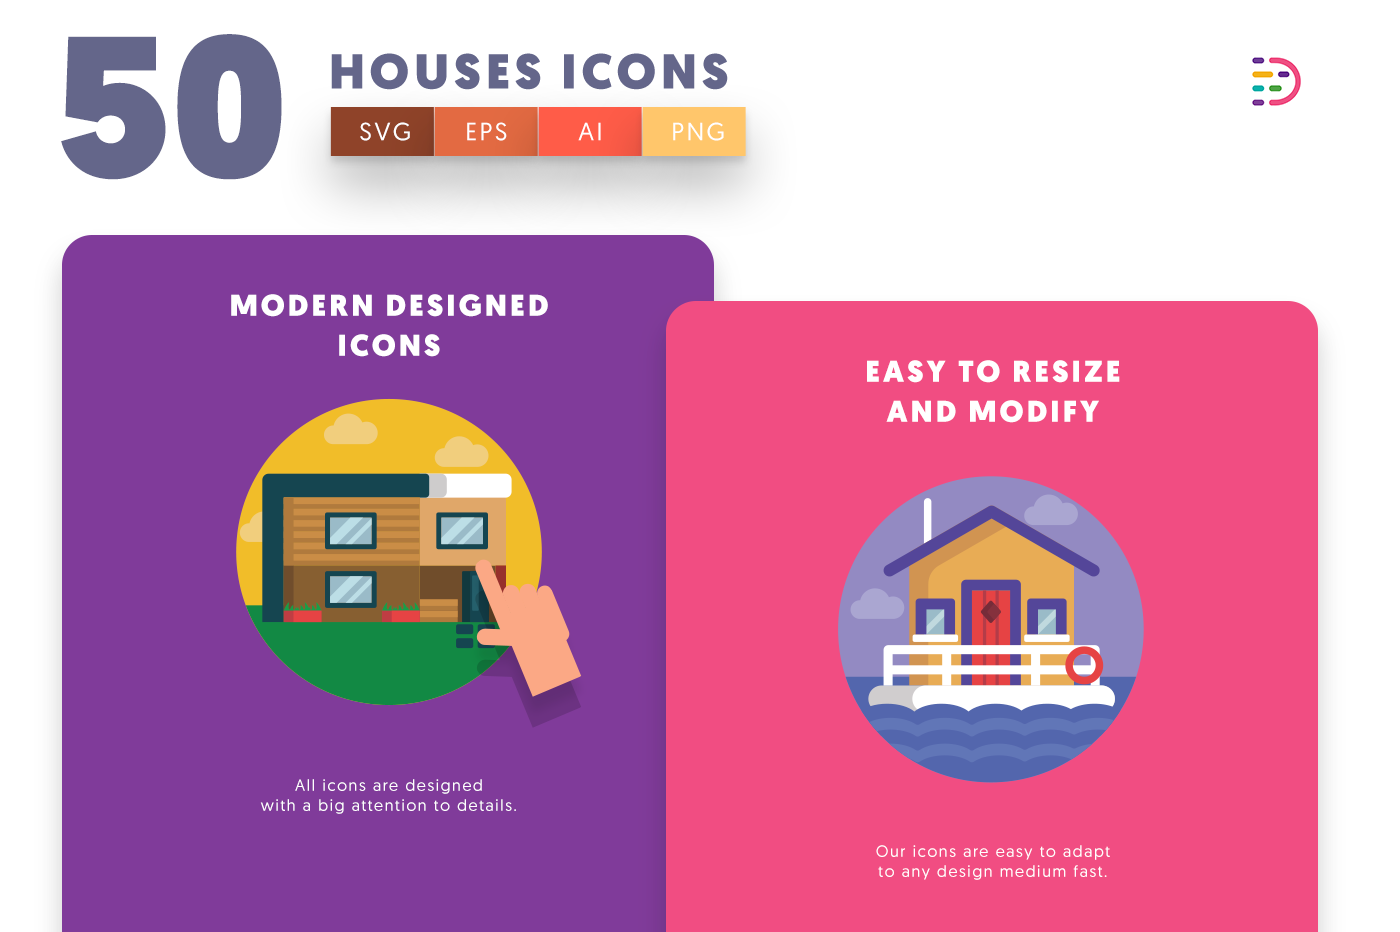 Houses icons png/svg/eps